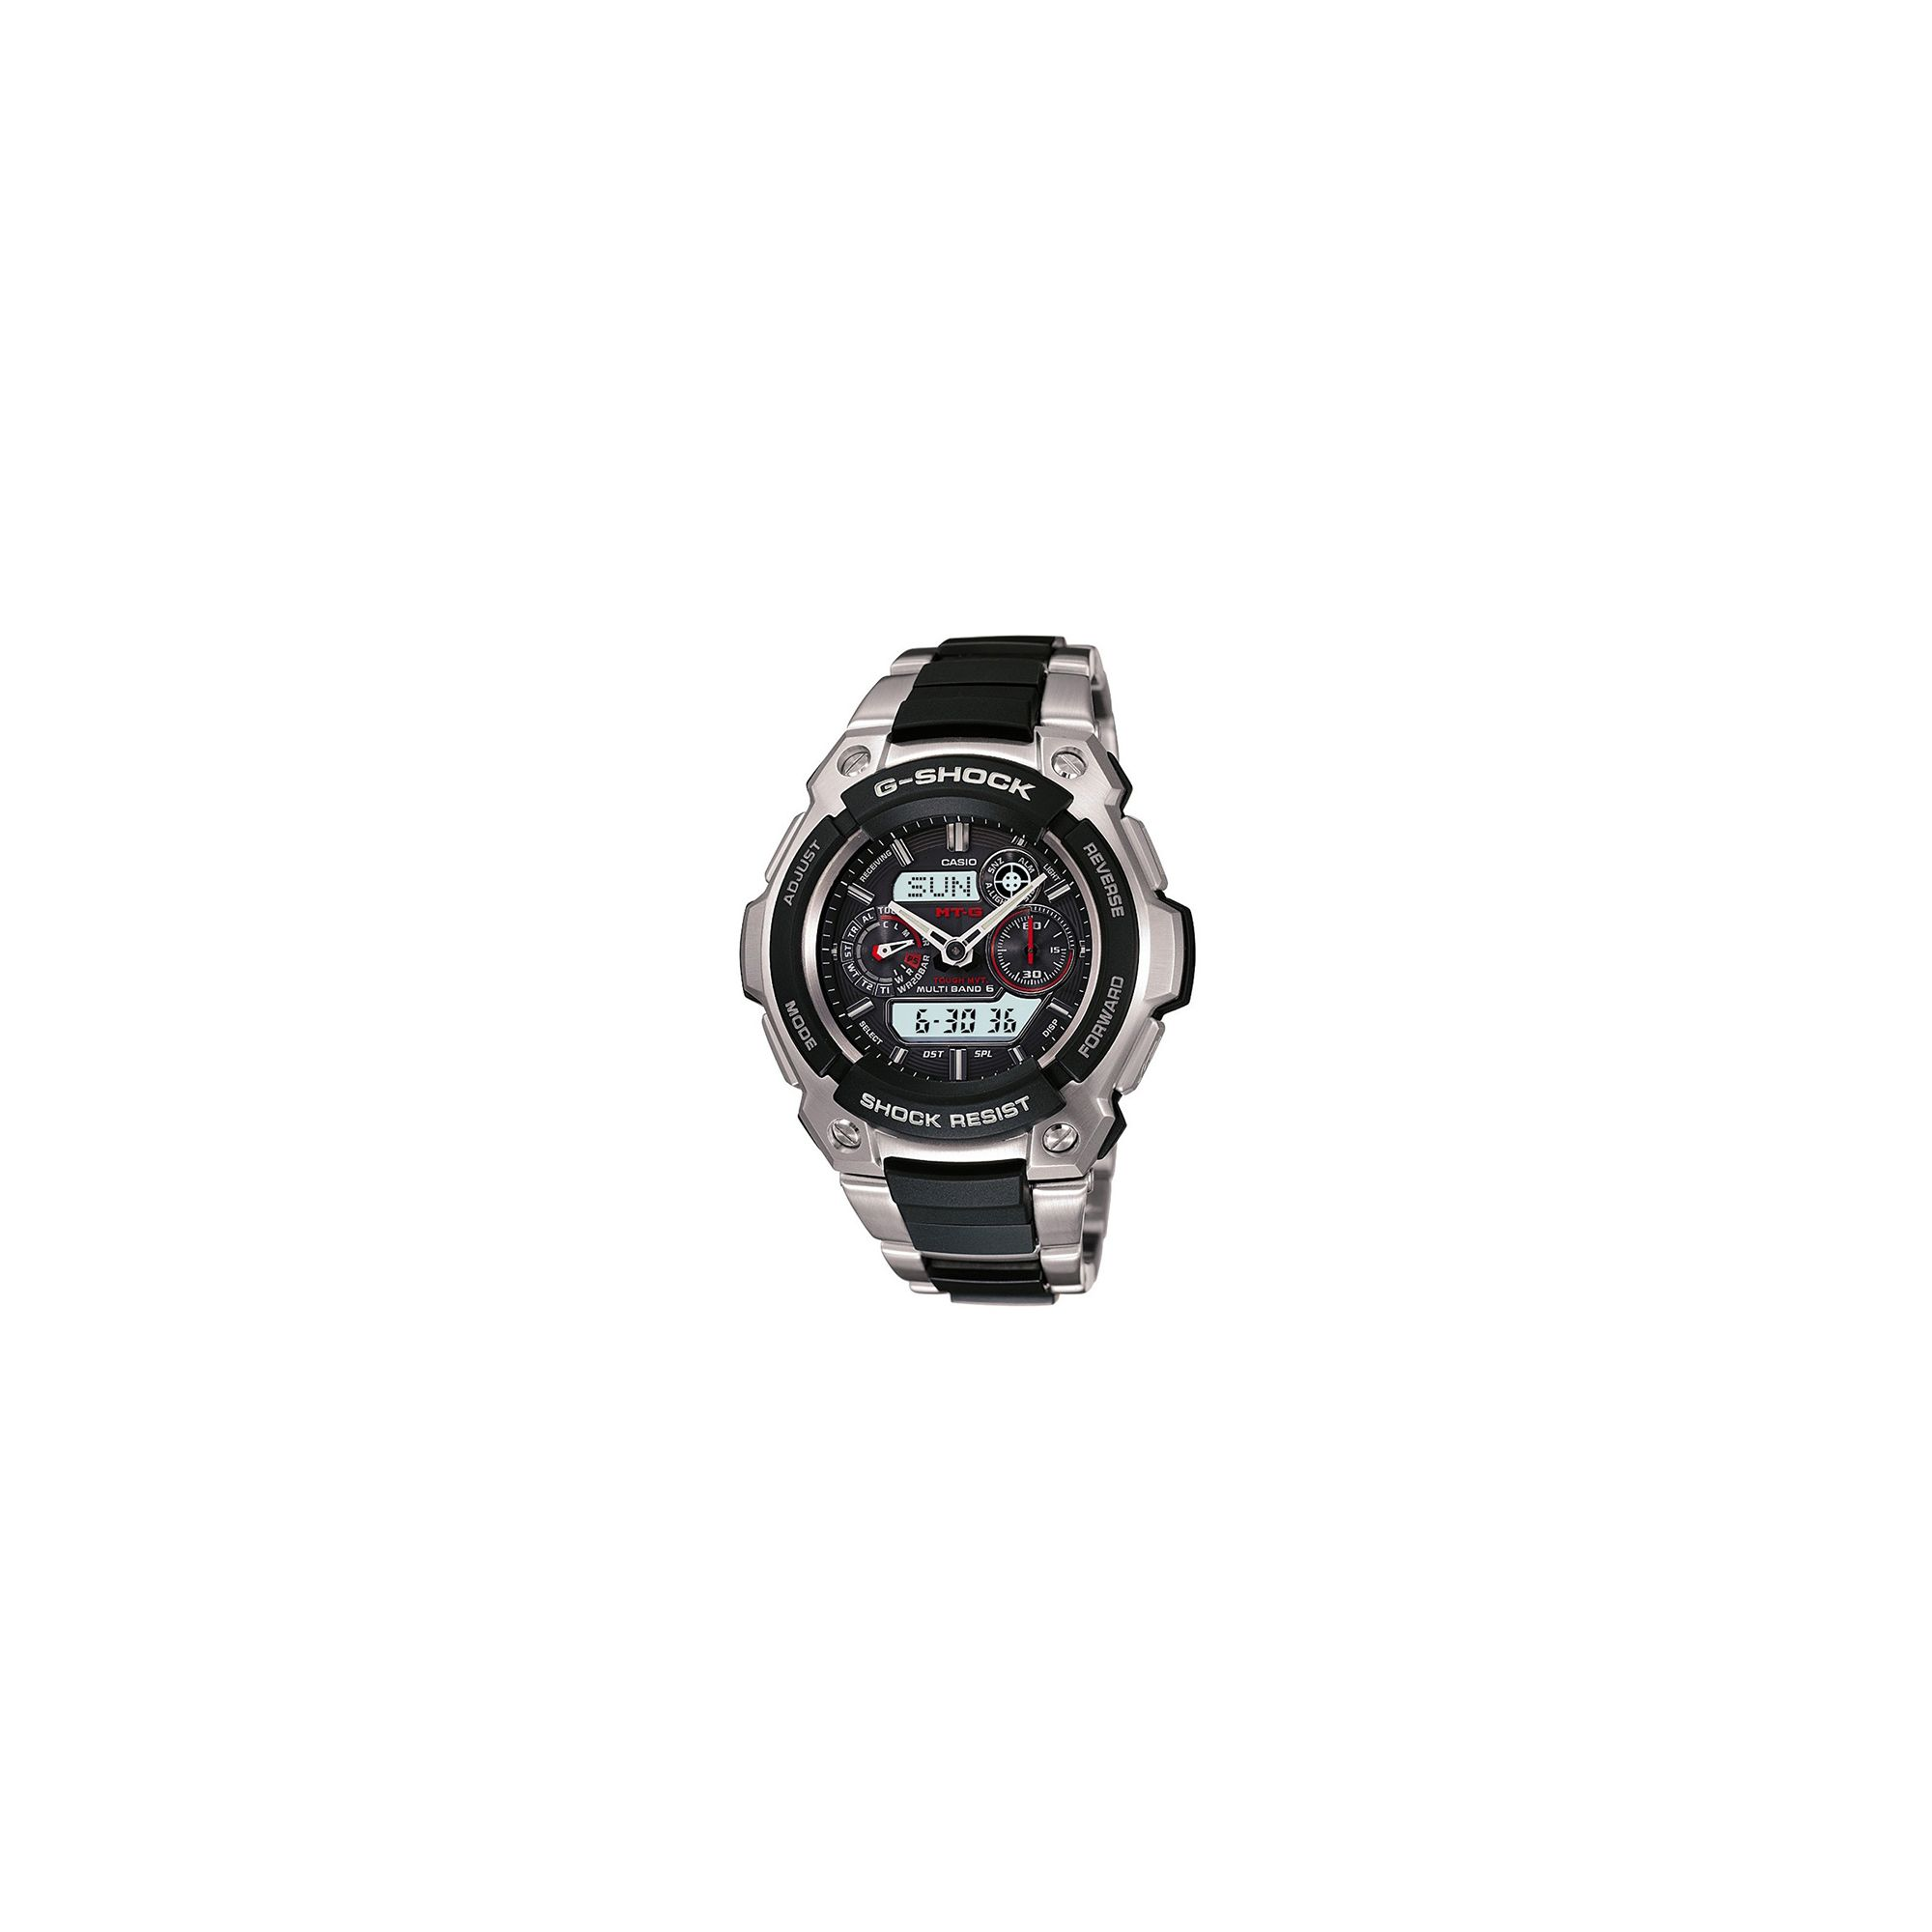 Casio G-Shock Chrono Watch MTG-1500-1AER at Tesco Direct